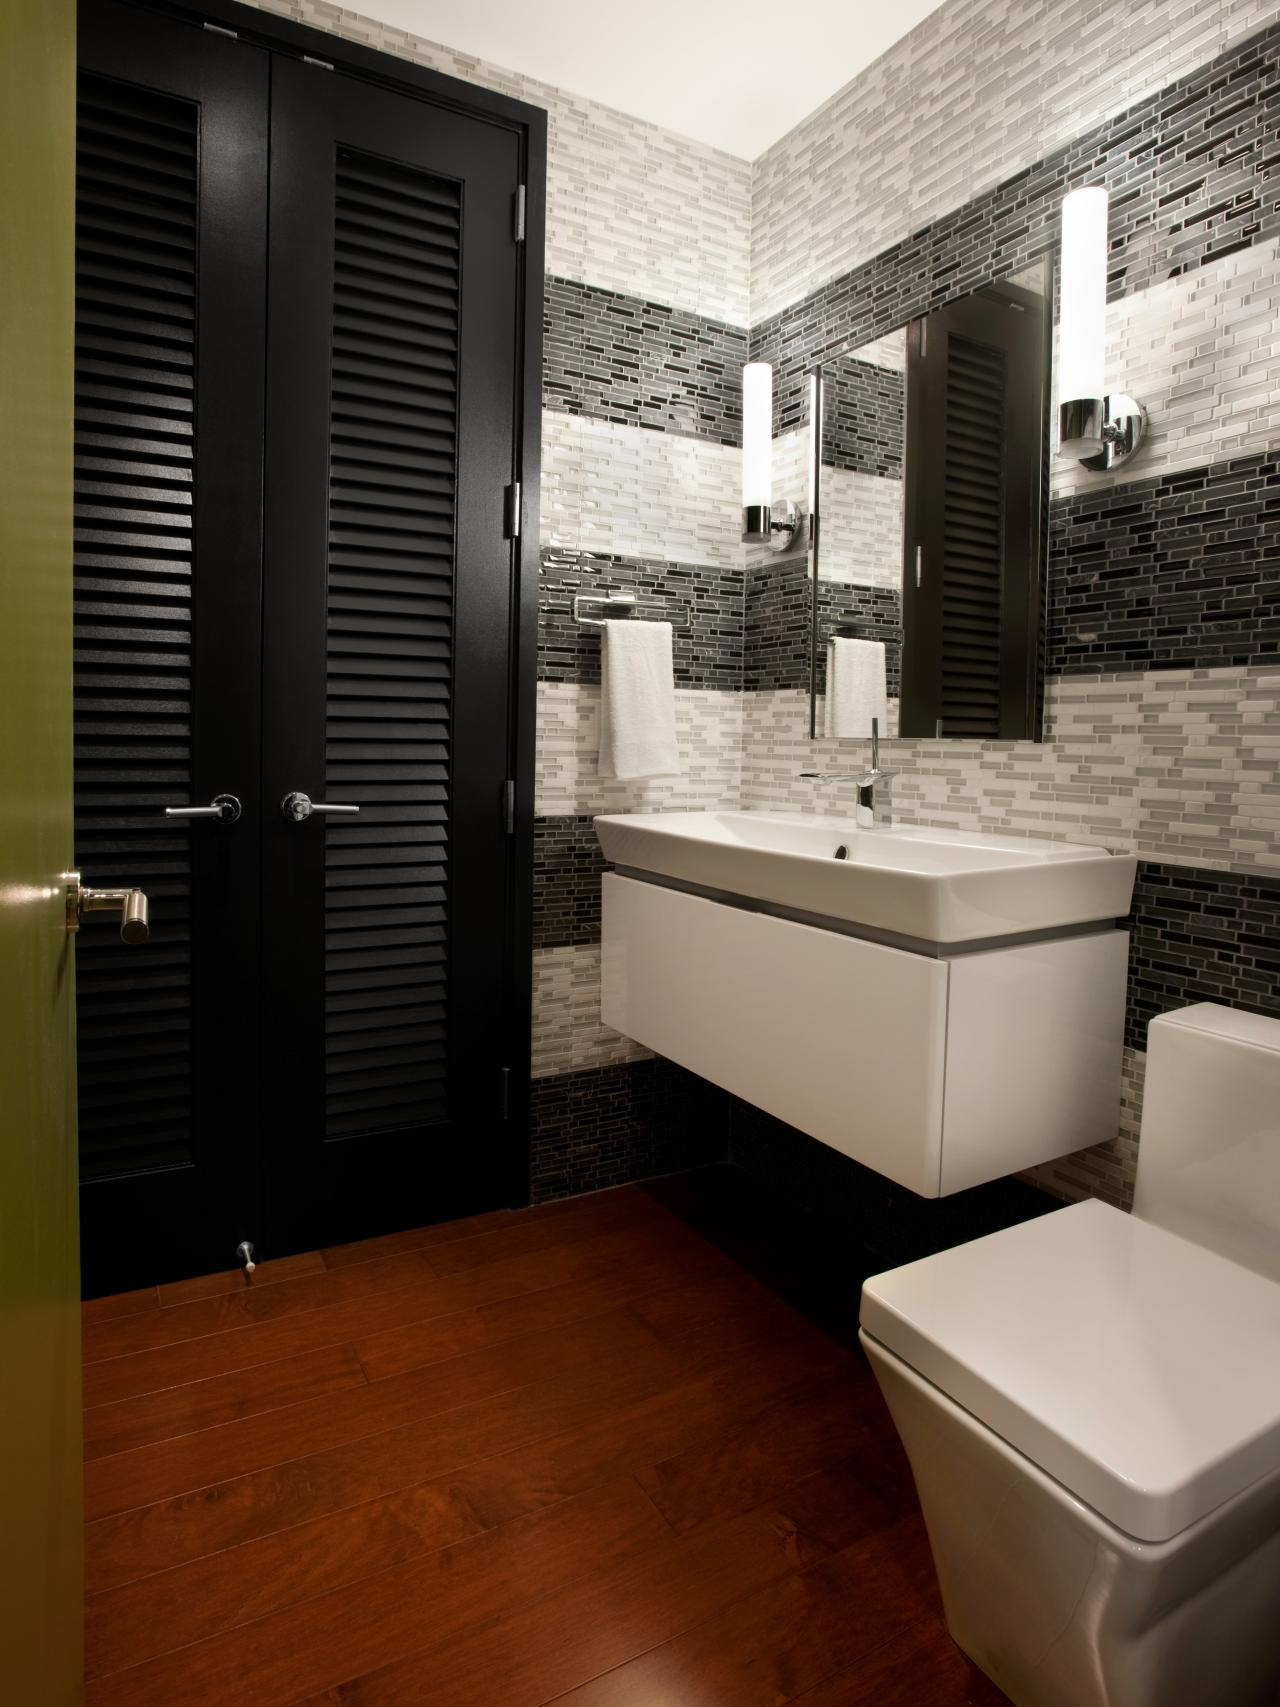 Modern Restrooms Mesmerizing Modern Bathroom Design Ideas Pictures & Tips From Hgtv  Hgtv Design Inspiration